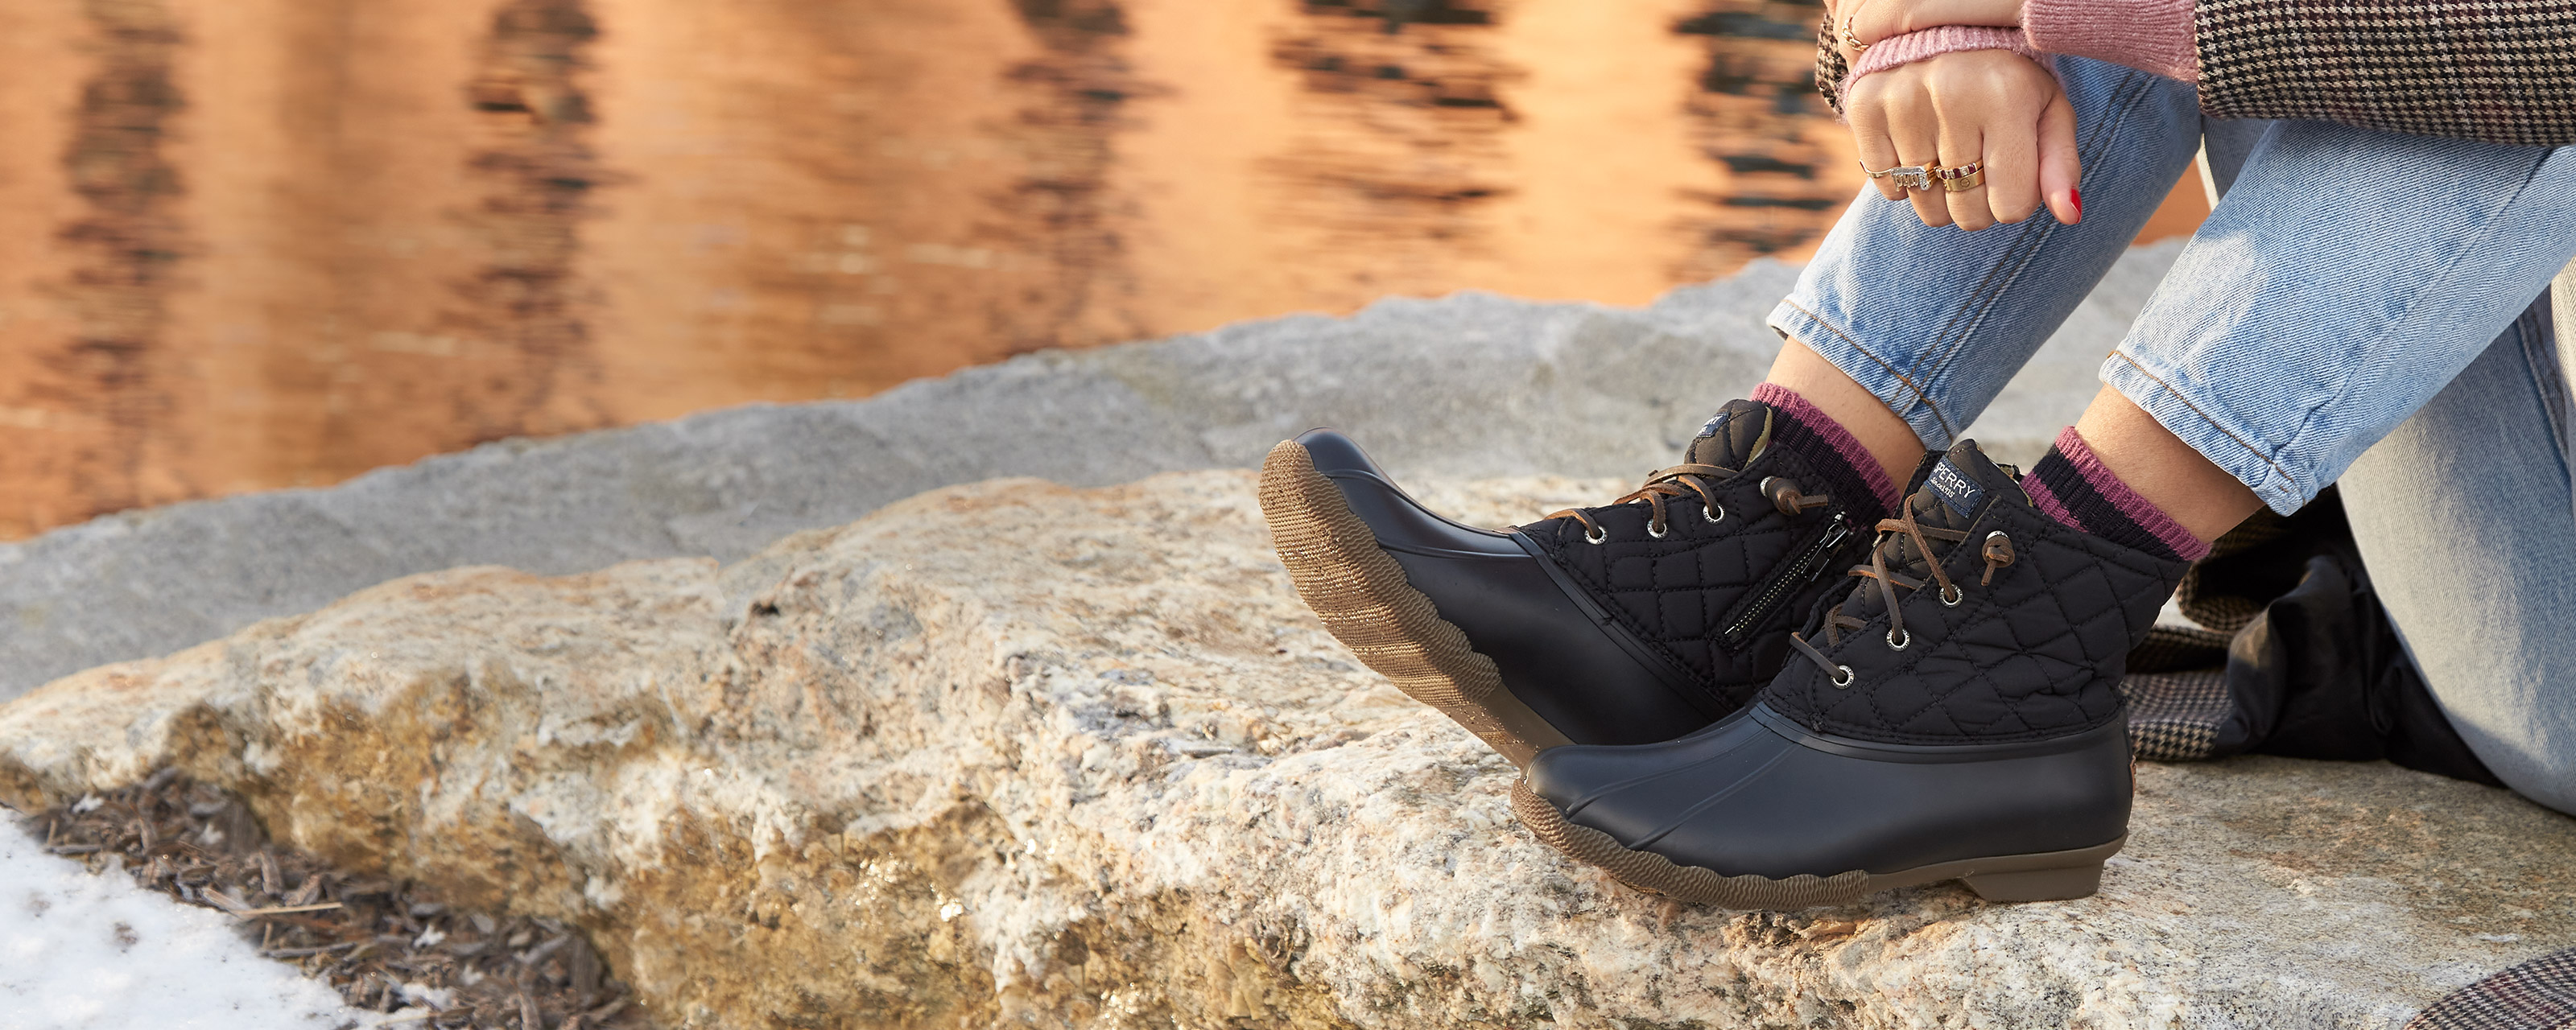 A woman's legs crossed sitting on a stone wall overlooking a river; rubber and leather duck boots on her feet